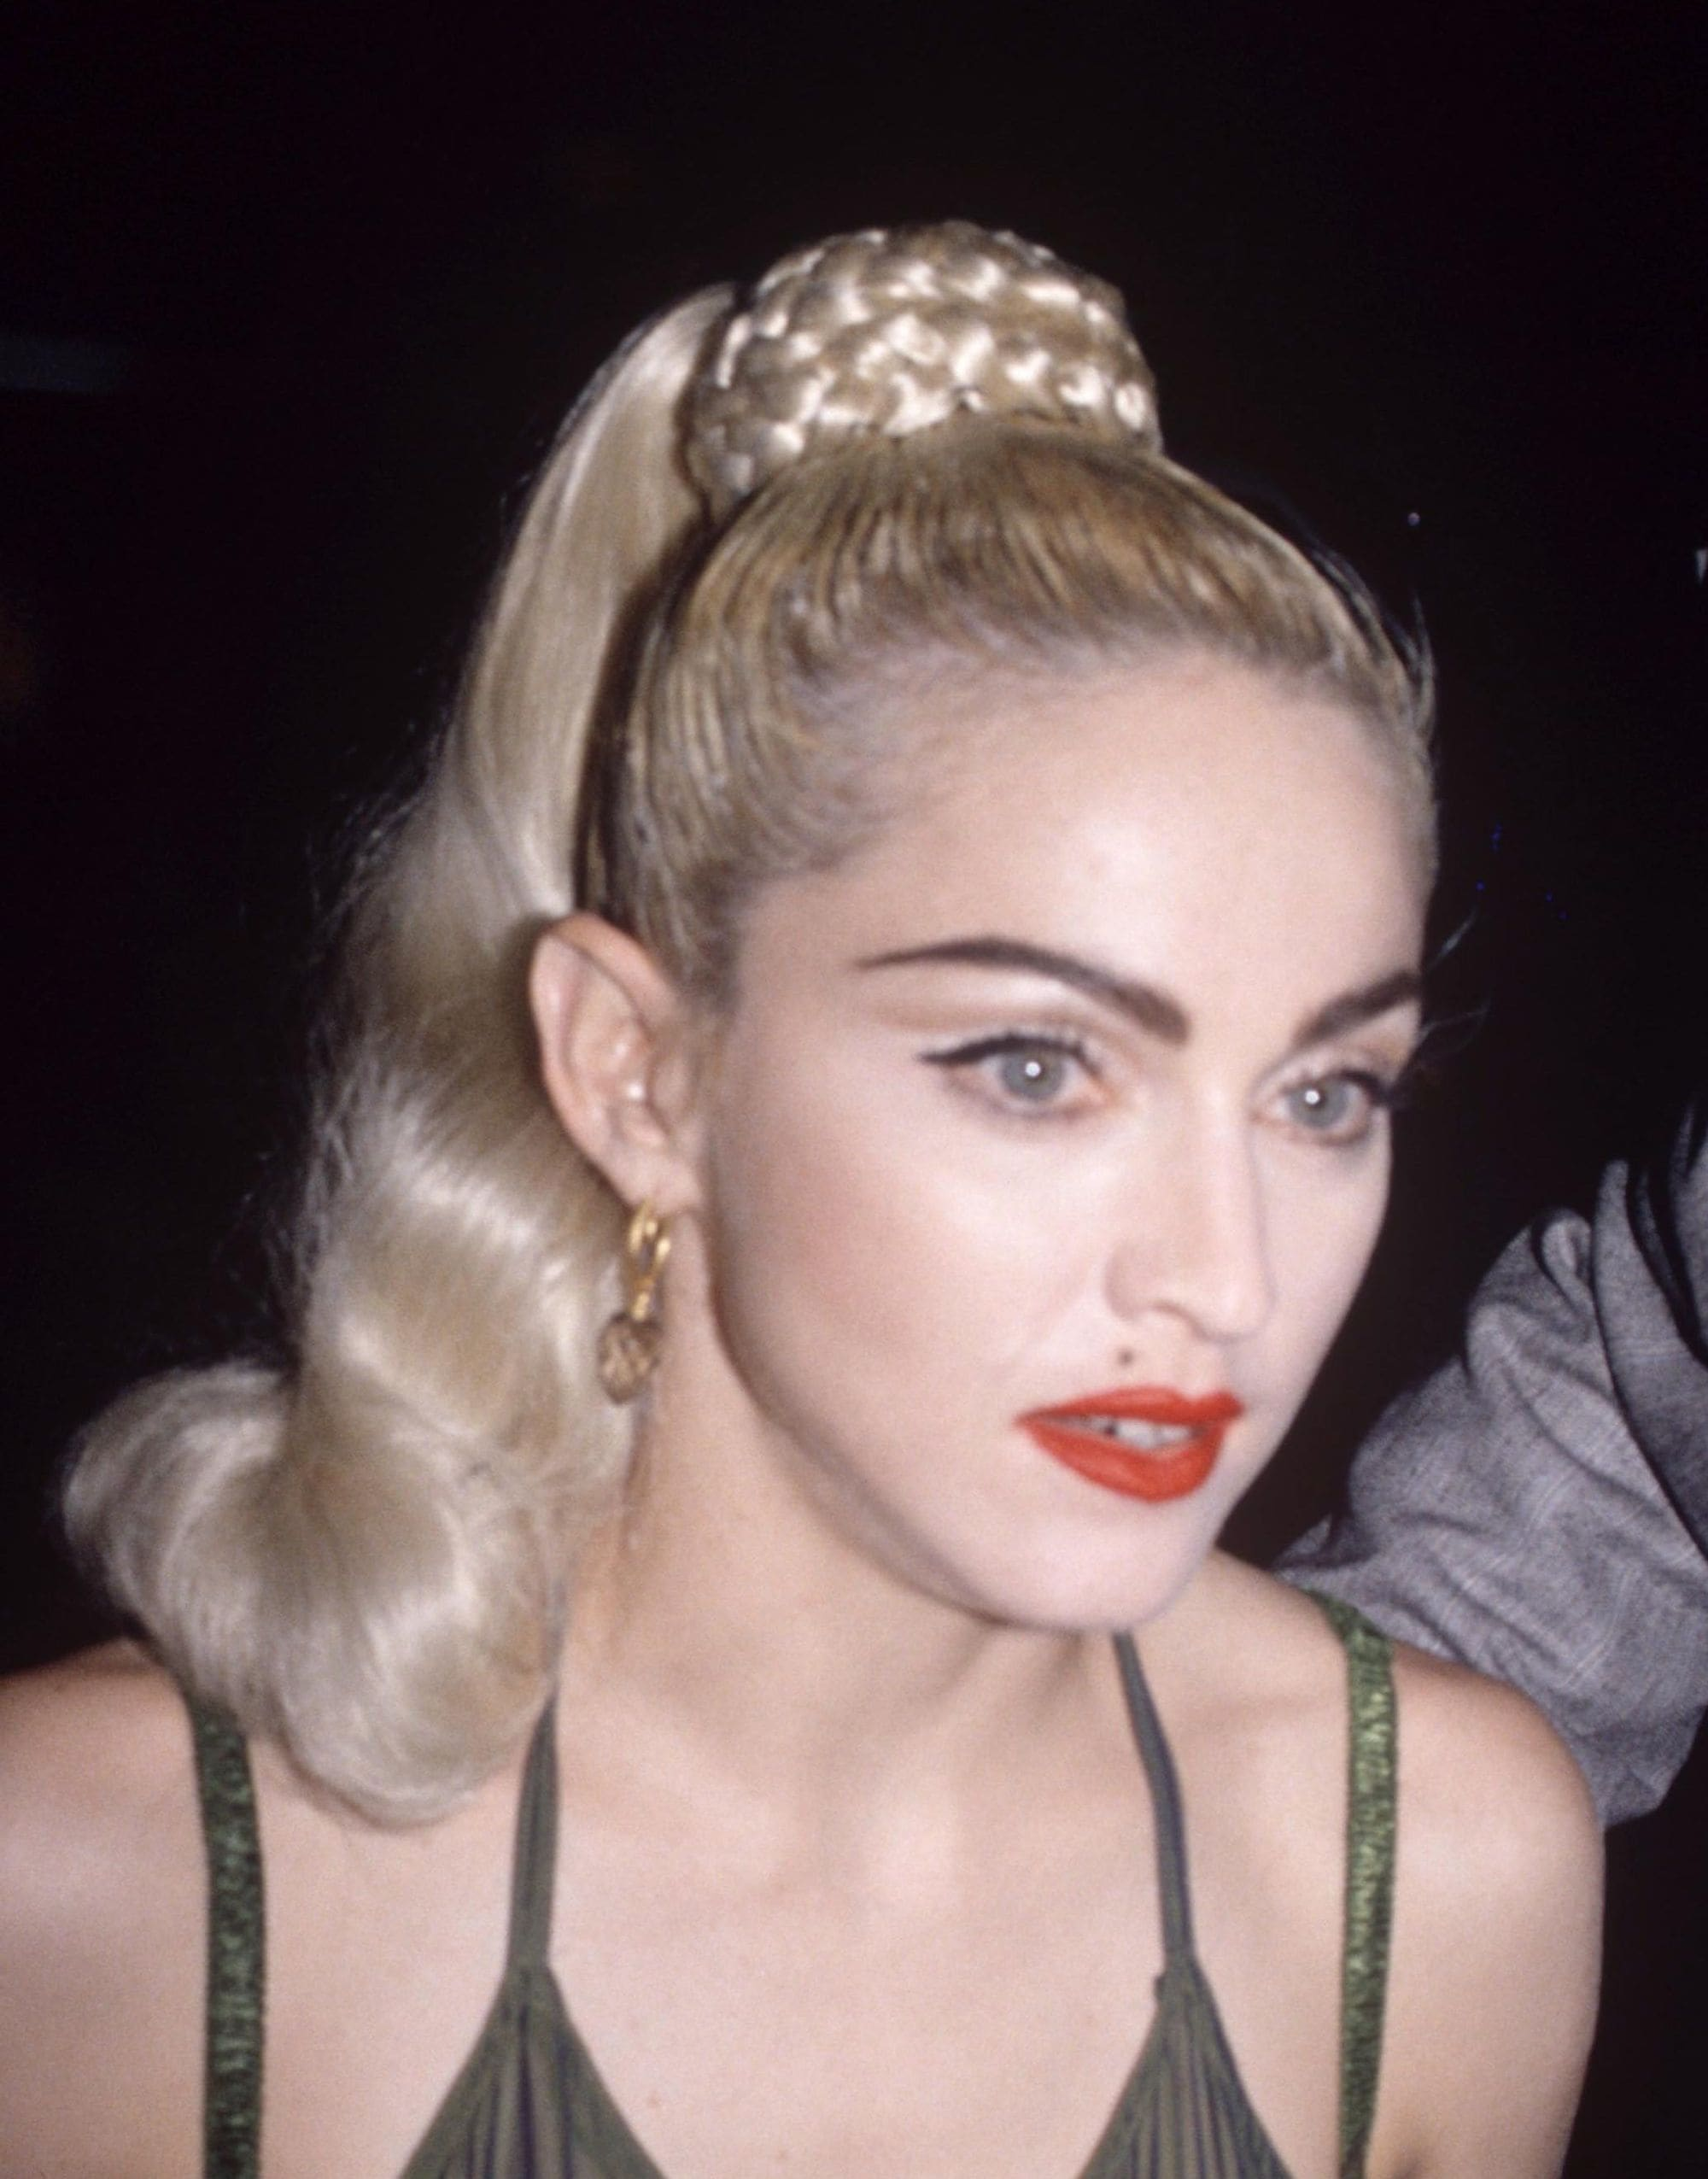 Madonna in 1990 with her iconic Blond Ambition braided high ponytail